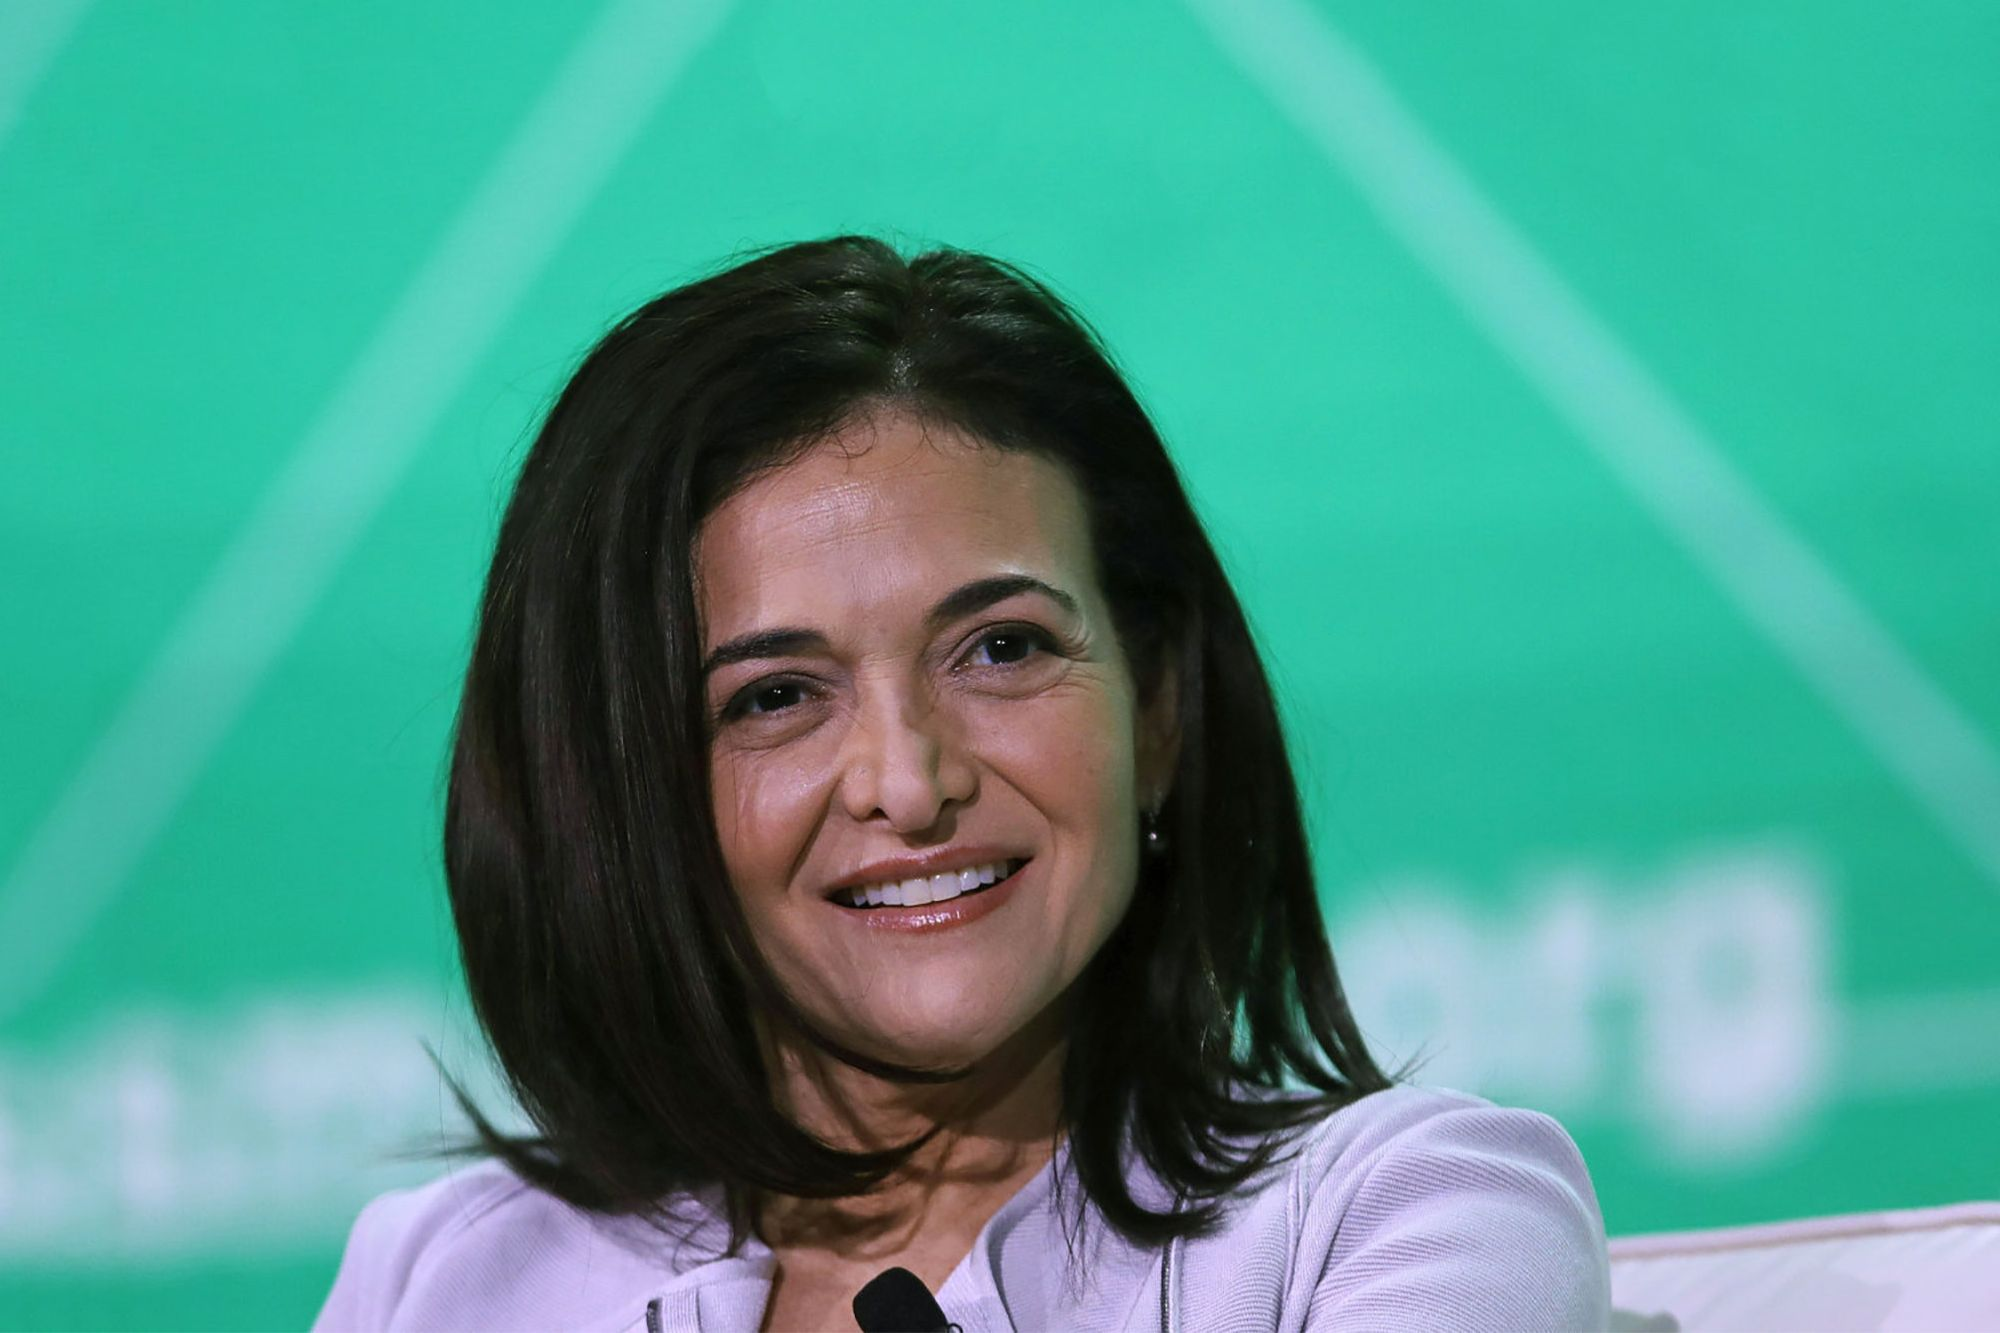 Sheryl Sandberg Asked Facebook Staff to 'Look Into' Soros Investments